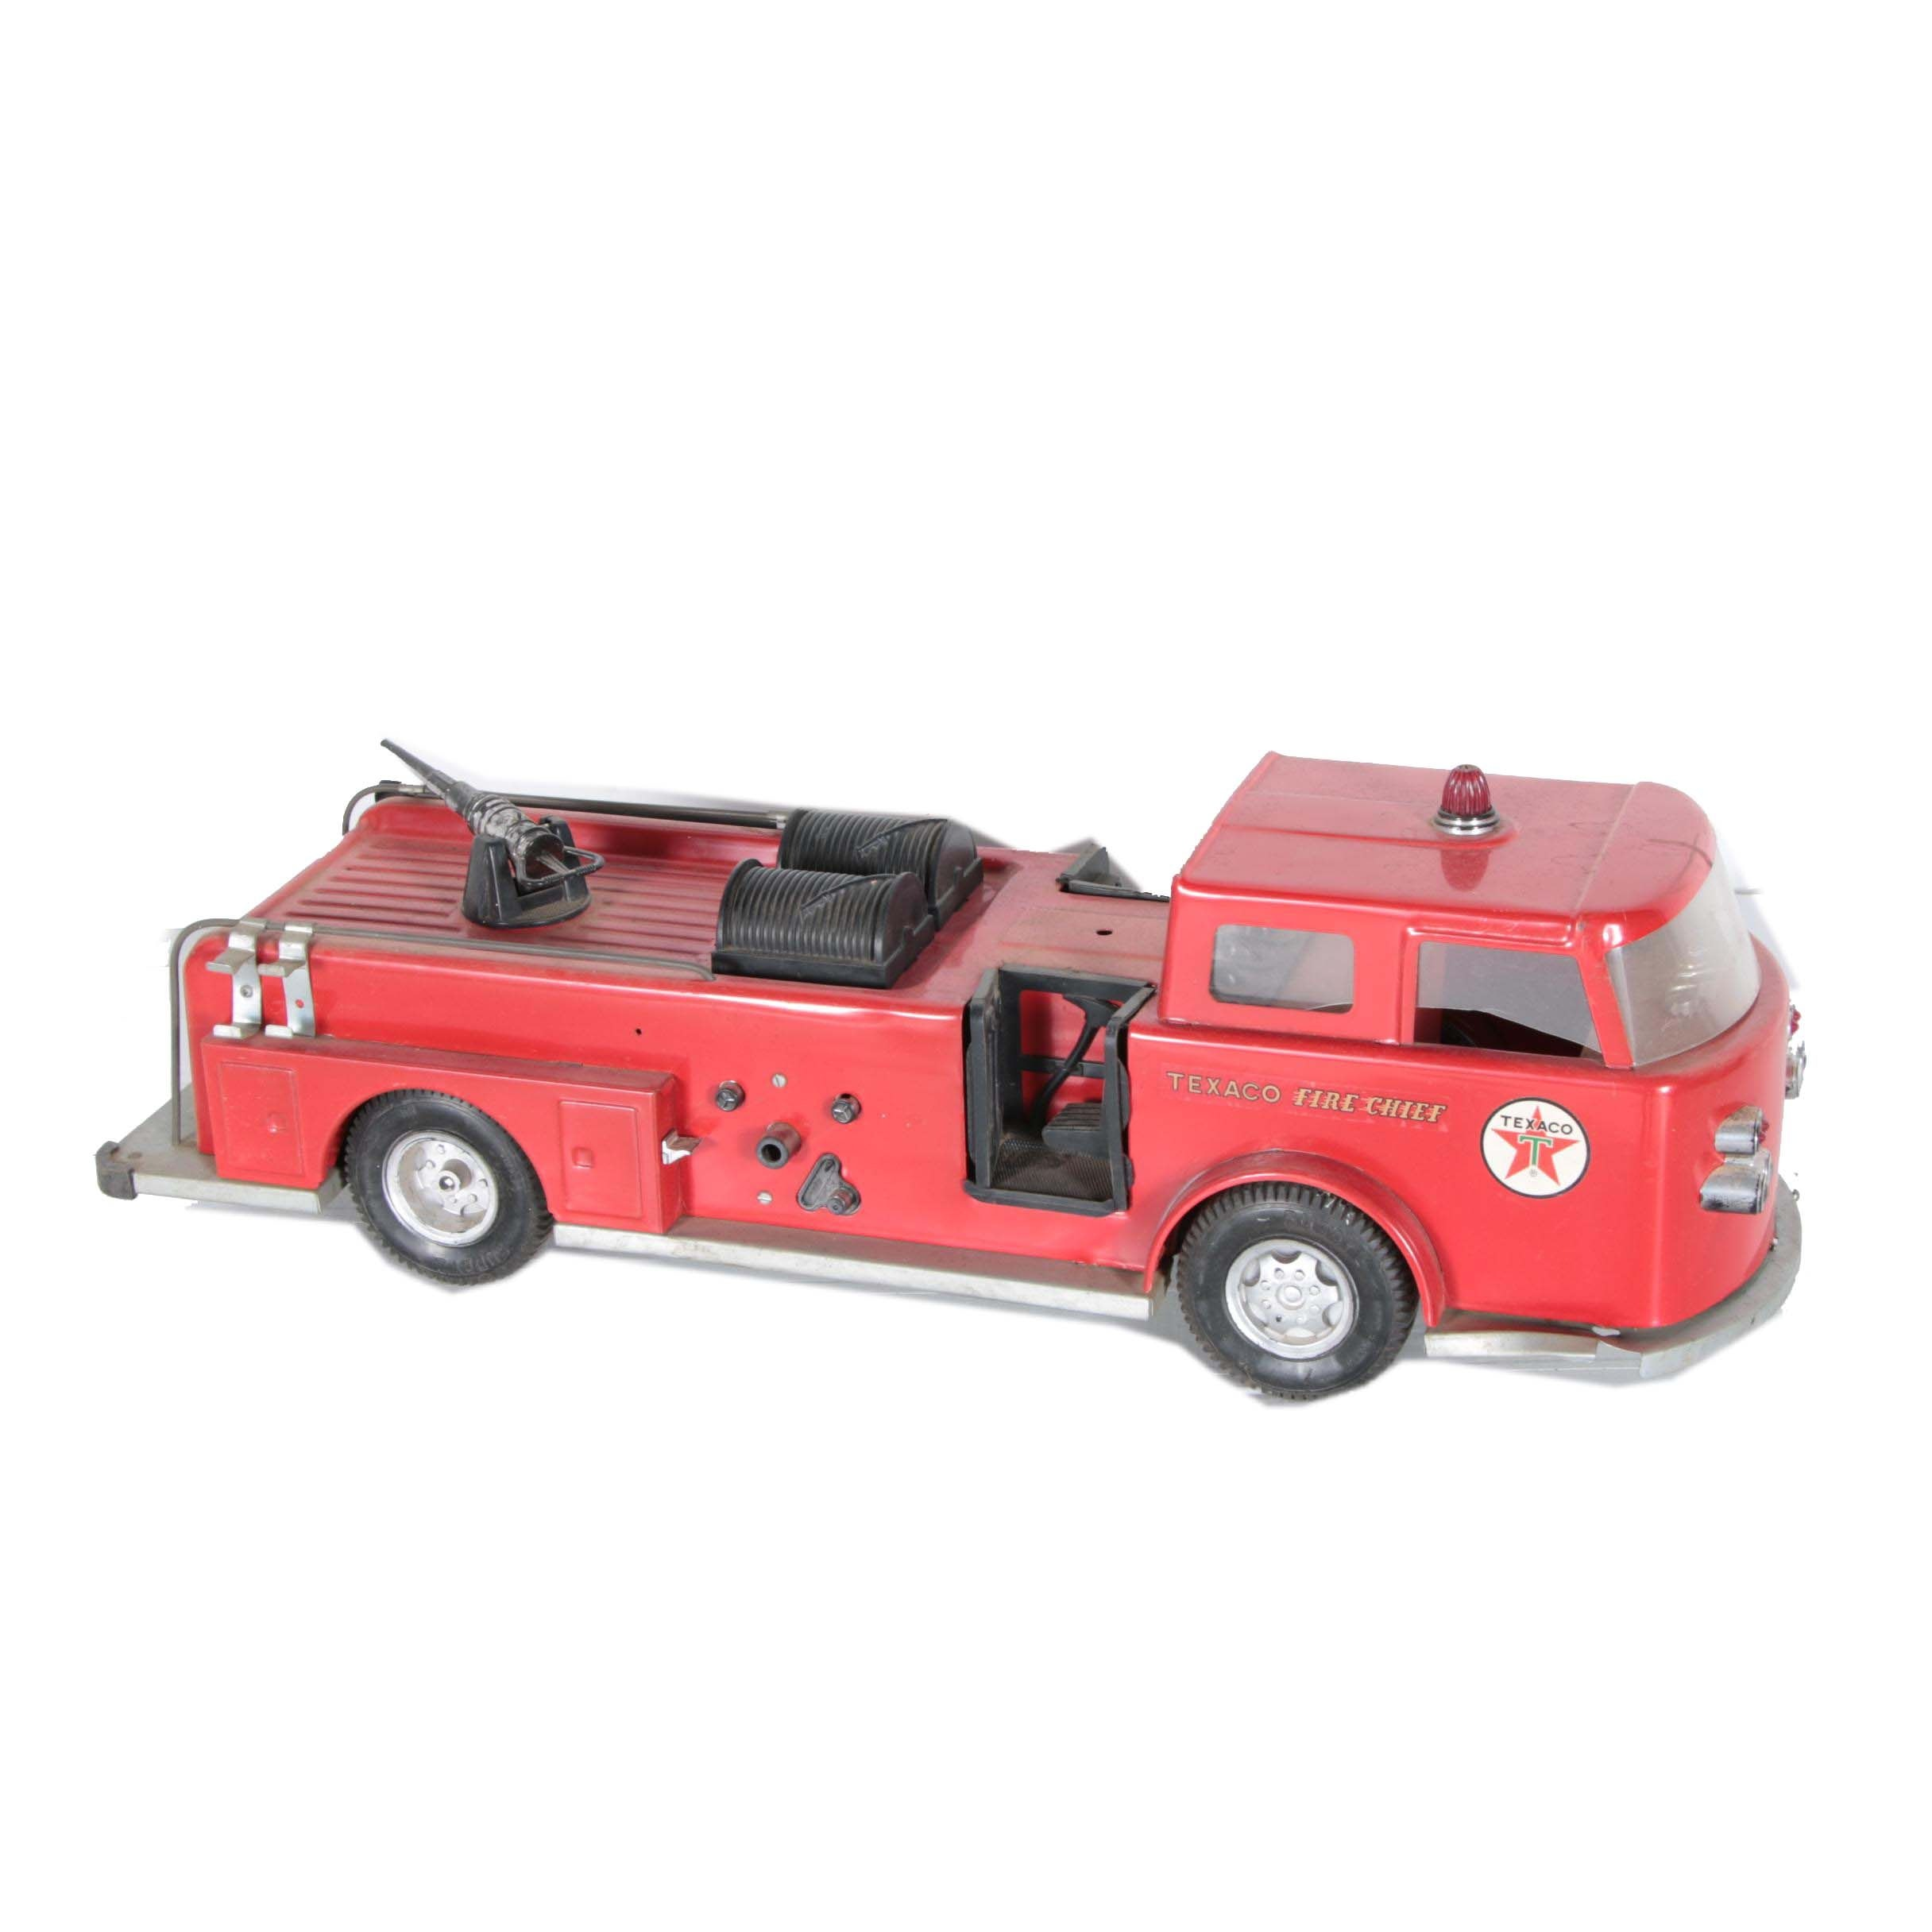 1960s Pressed Steel Buddy L. Texaco Fire Chief Truck